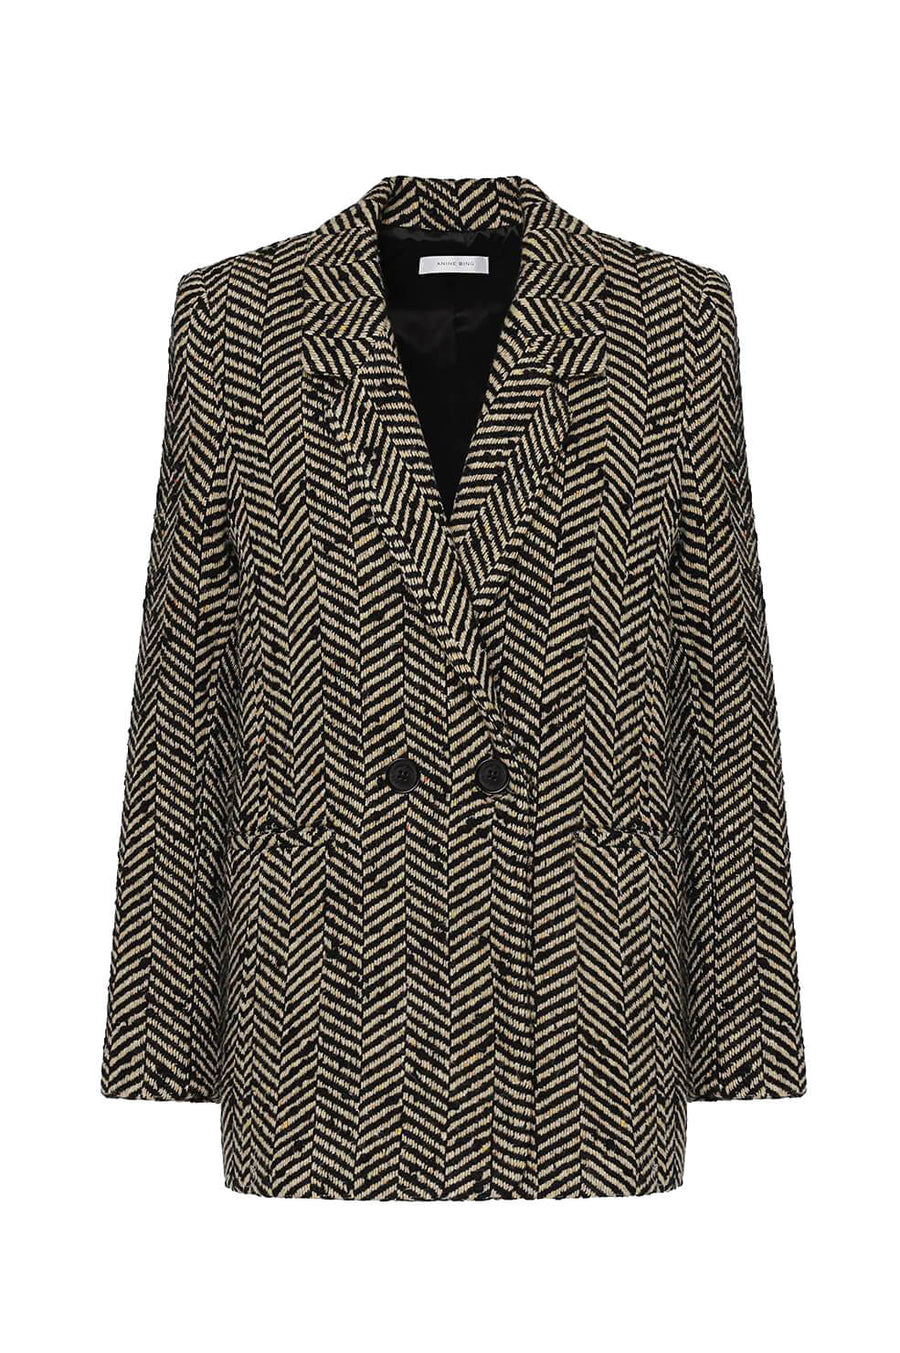 Anine Bing Fishbone Women's Blazer in Ivory and Black from The New Trend Australian Anine Bing Stockist